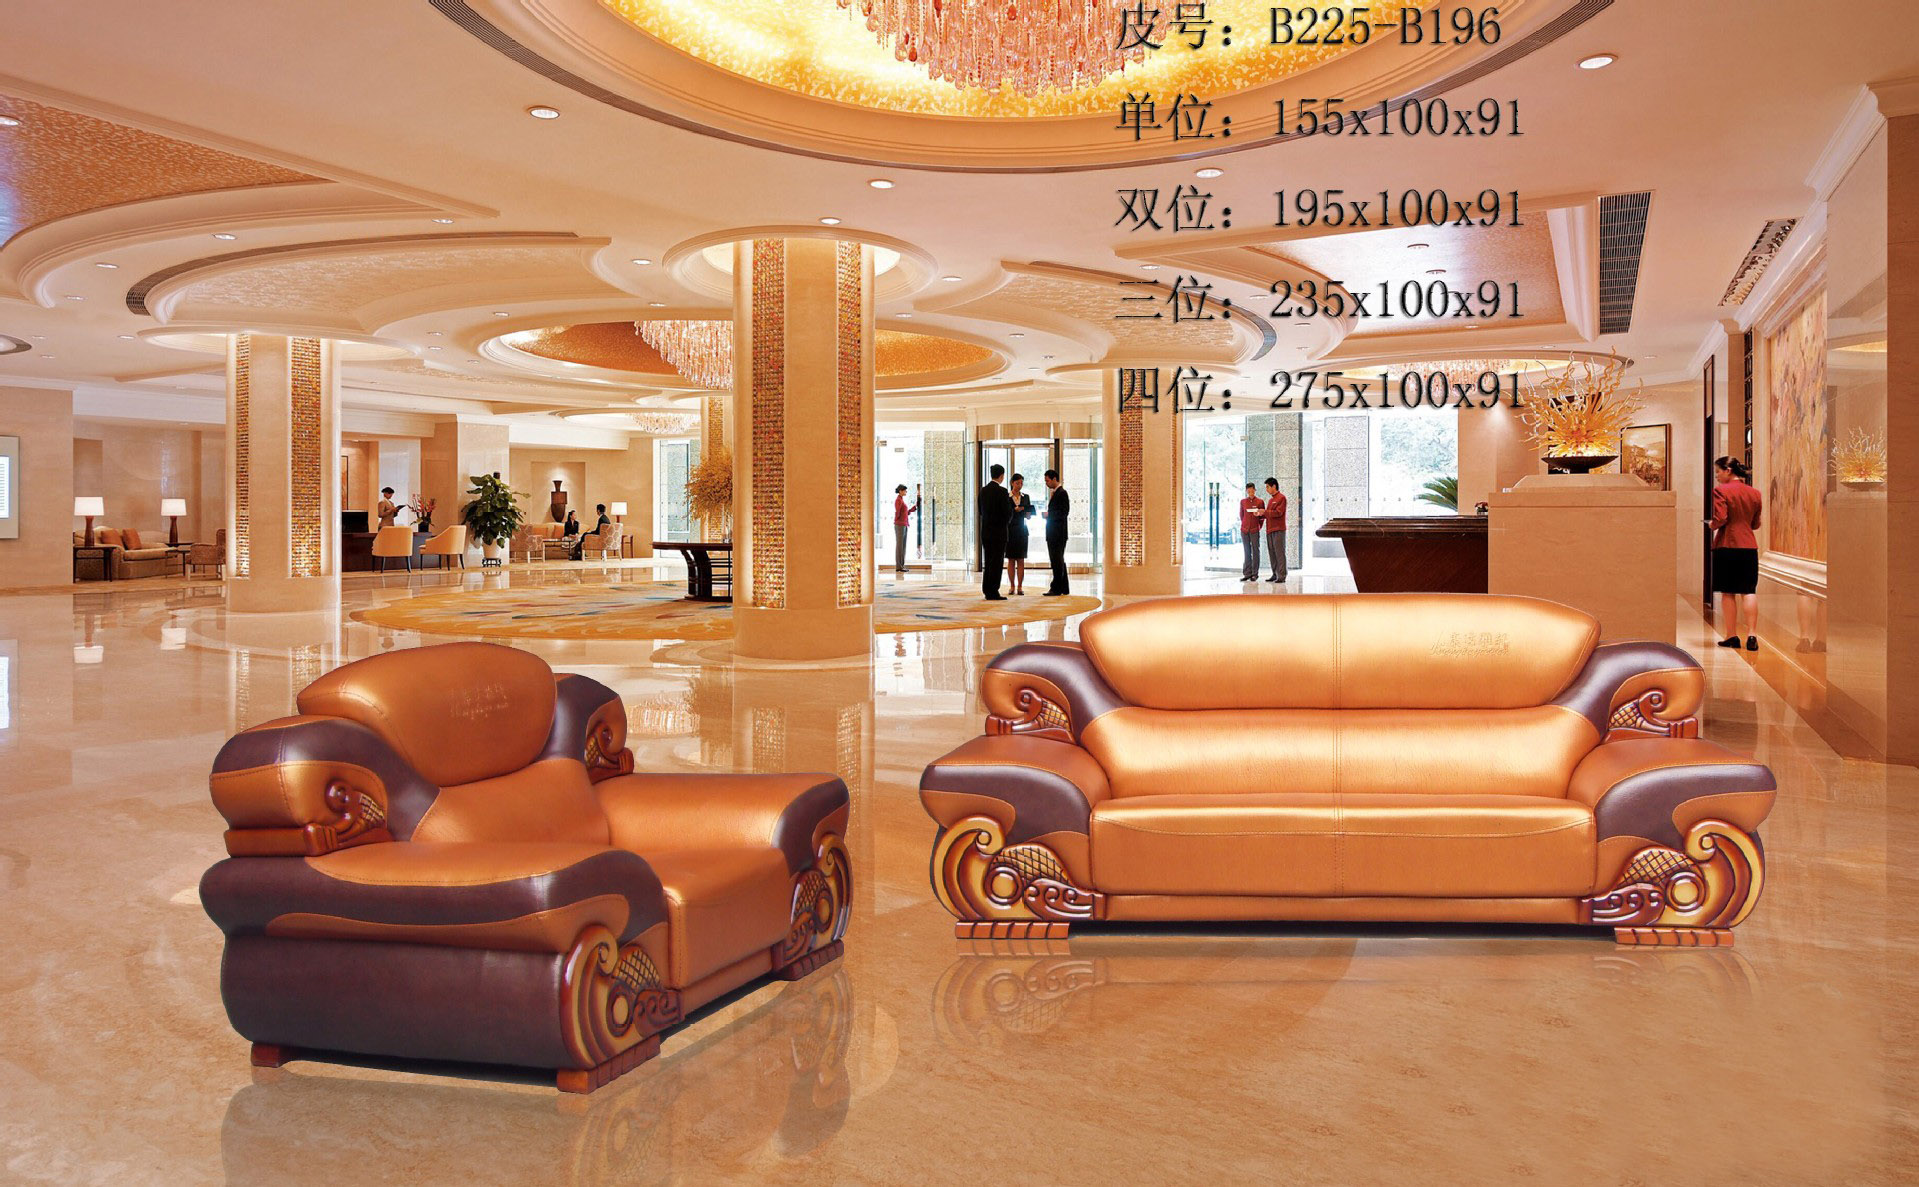 Luxury leather sofas picture more detailed picture about for Sitting furniture living room